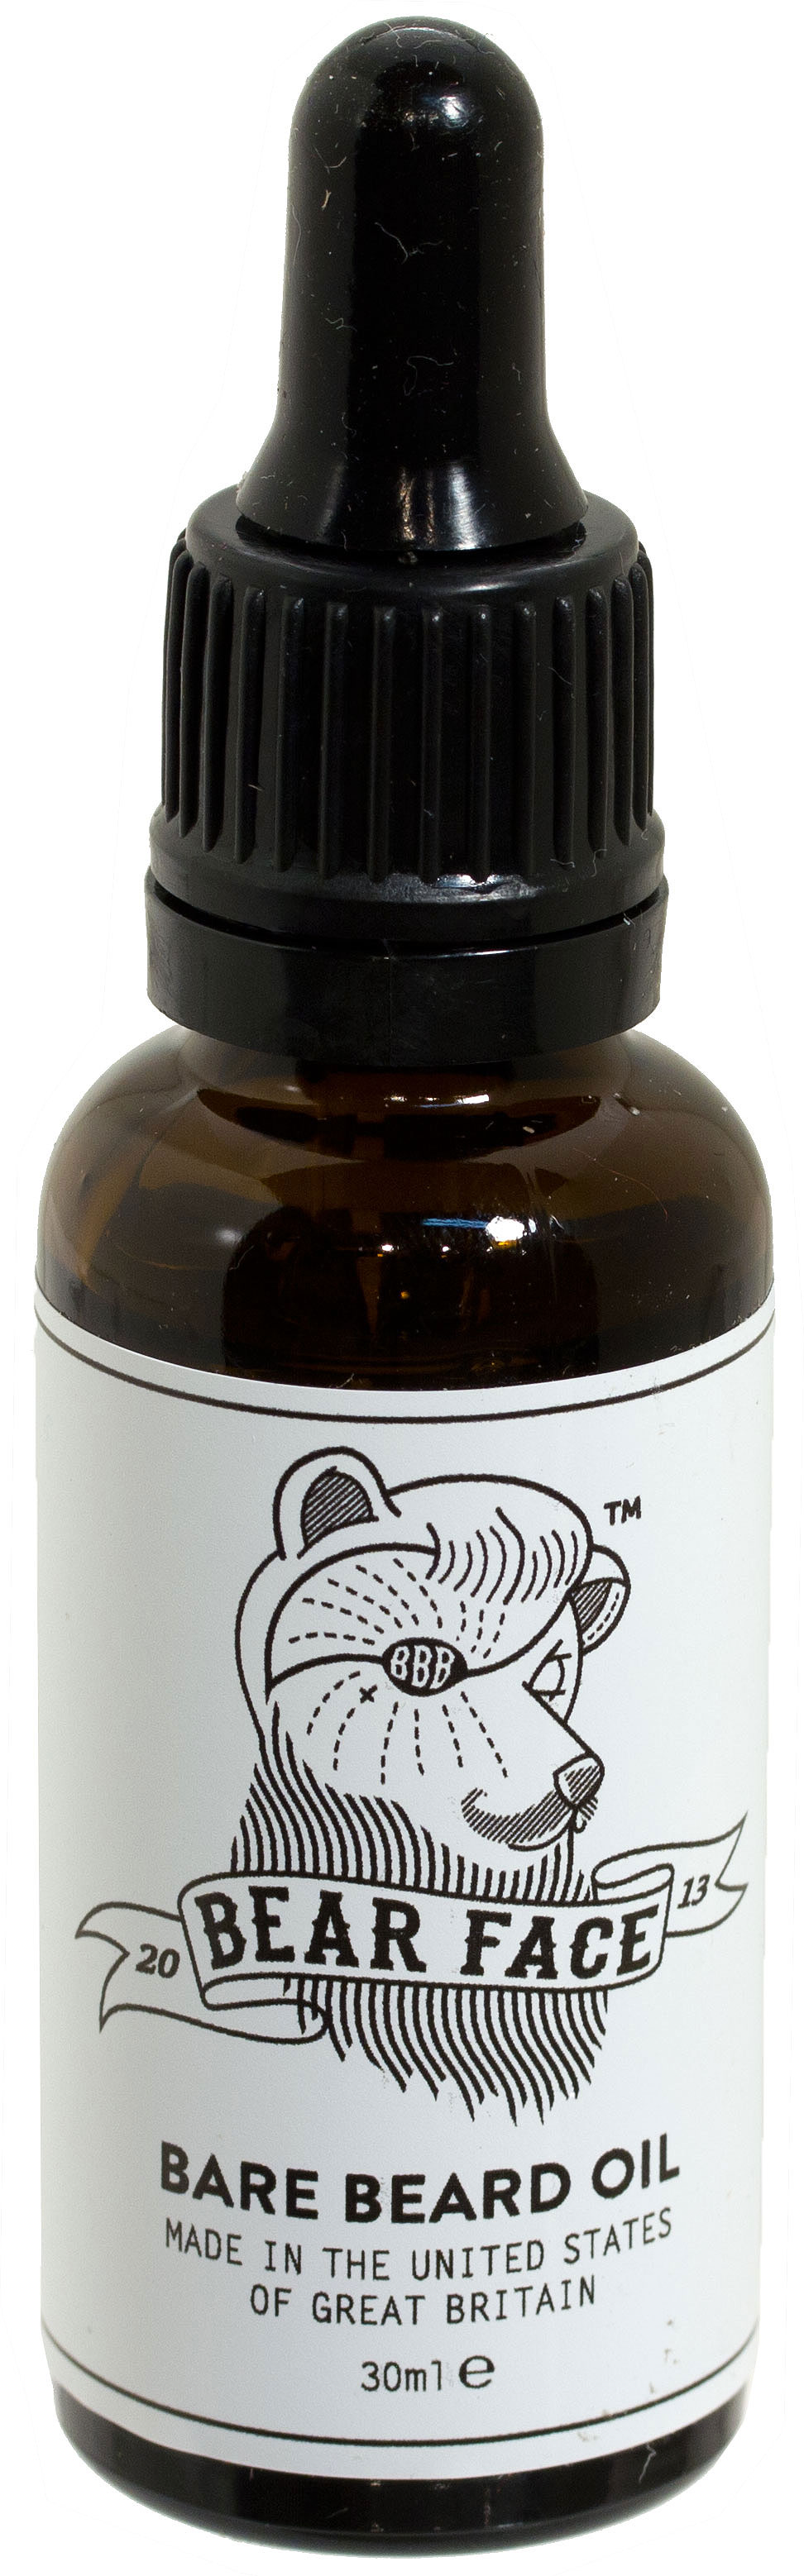 Bear Face Bare Beard Oil for All Faces, 30ml Eye Dropper Bottle